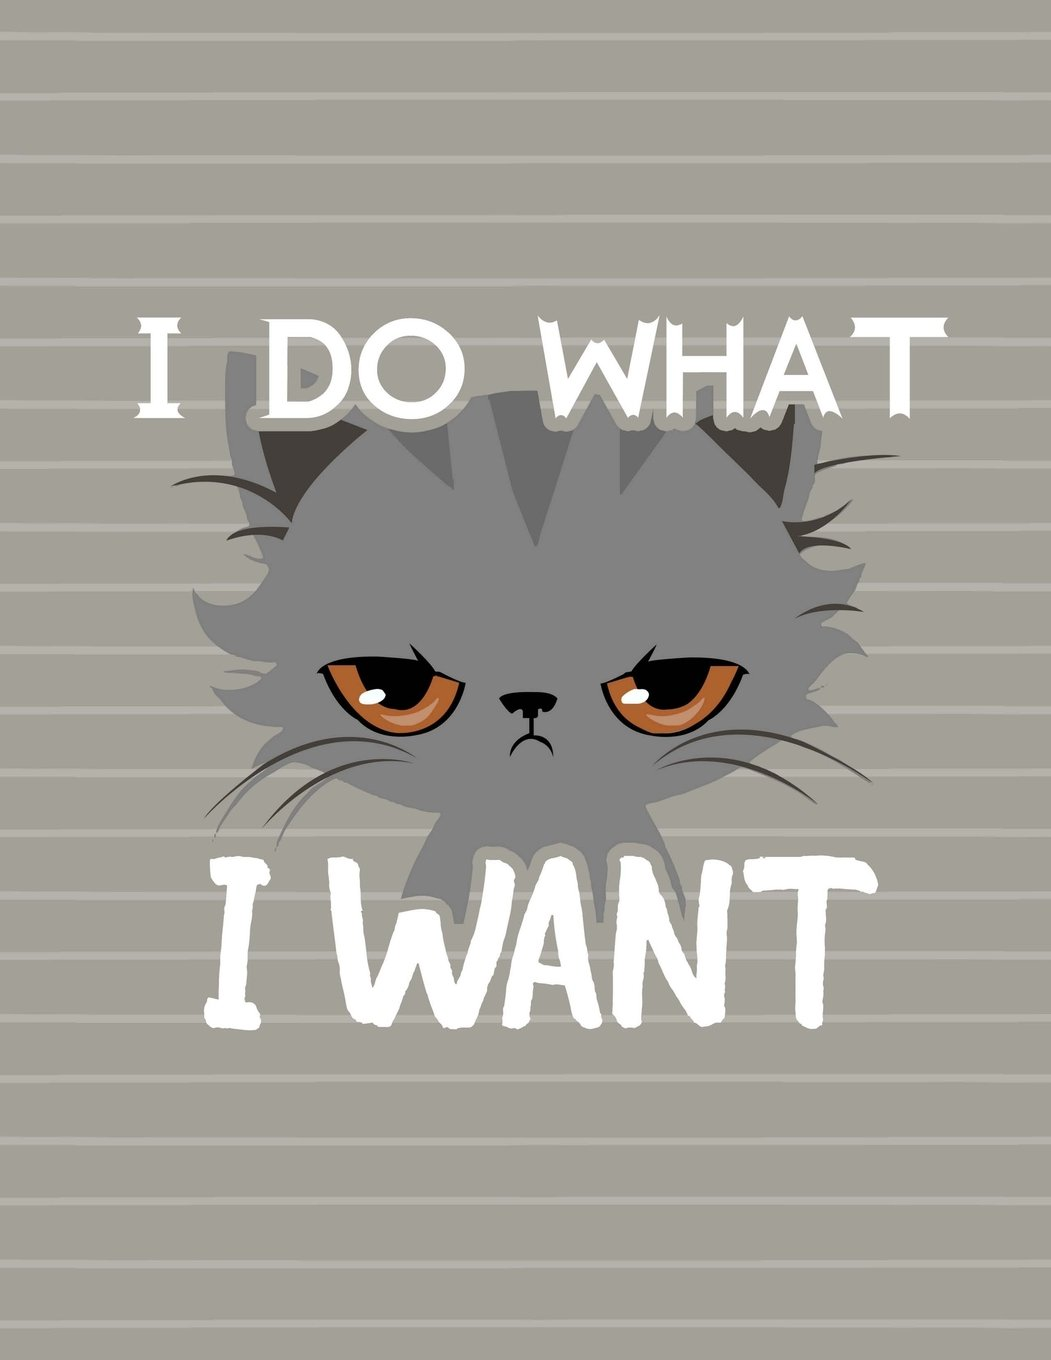 Download Cat I Do What I Want Notebook - College Ruled: 8.5 x 11 - 200 Pages - School Student Teacher Office pdf